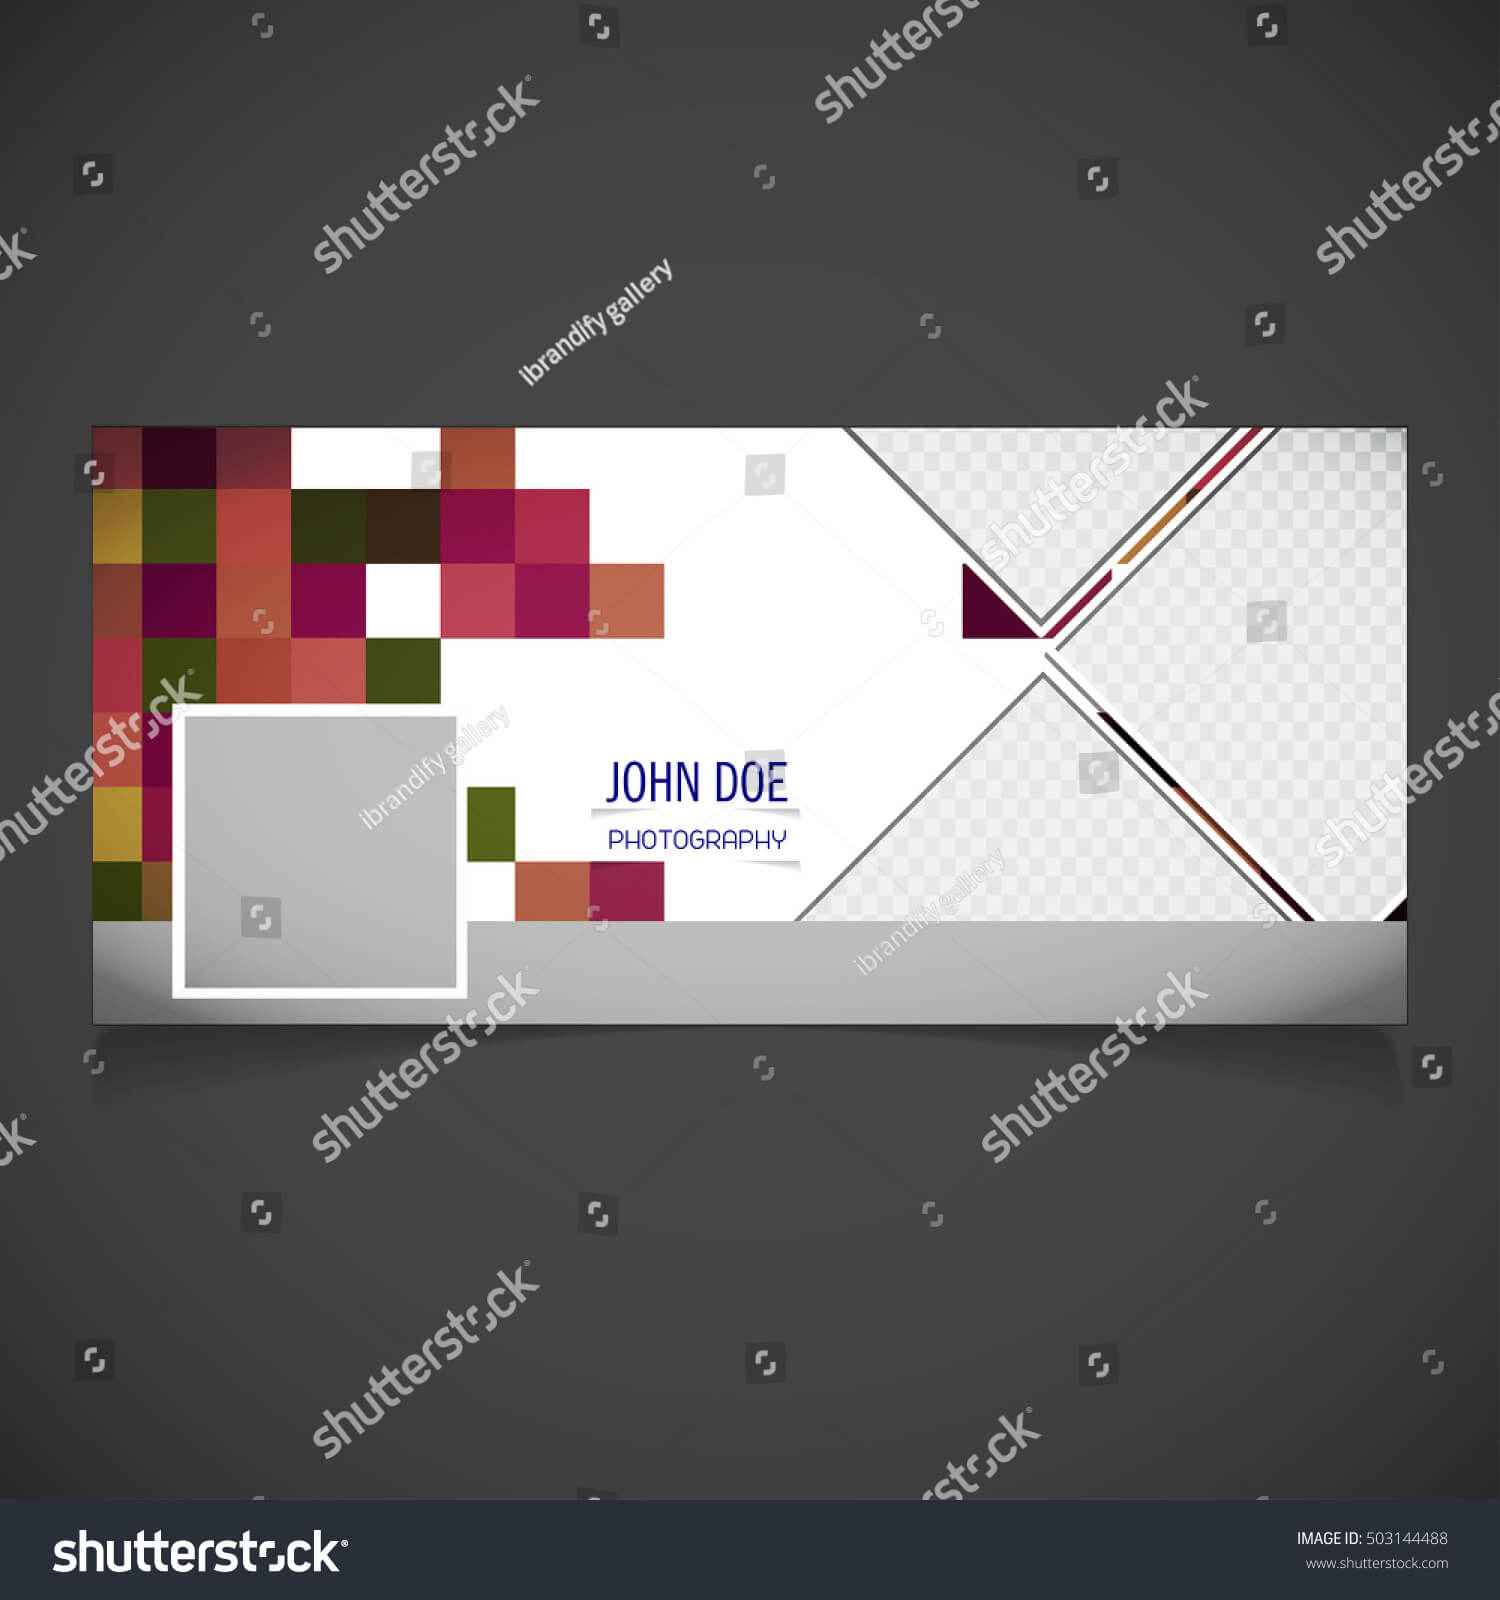 Creative Photography Banner Template Place Image Stock Regarding Photography Banner Template